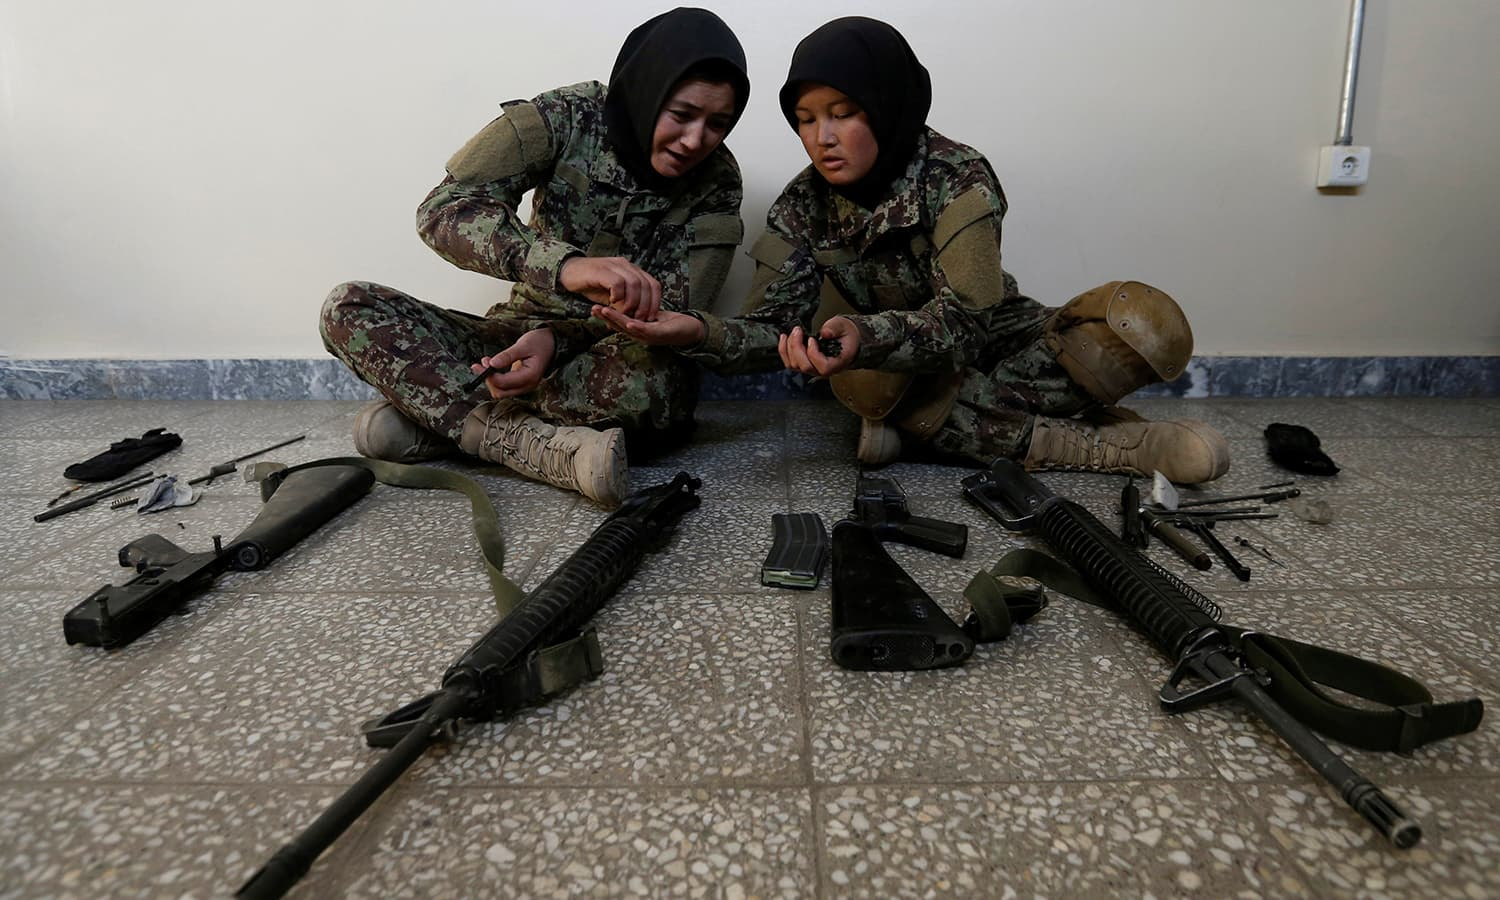 Female soldiers Karima Mohamadi, 21 (L), and Tamana, 19 (R), from the Afghan National Army (ANA) clean their weapons at the Kabul Military Training Centre (KMTC) in Kabul─Reuters.